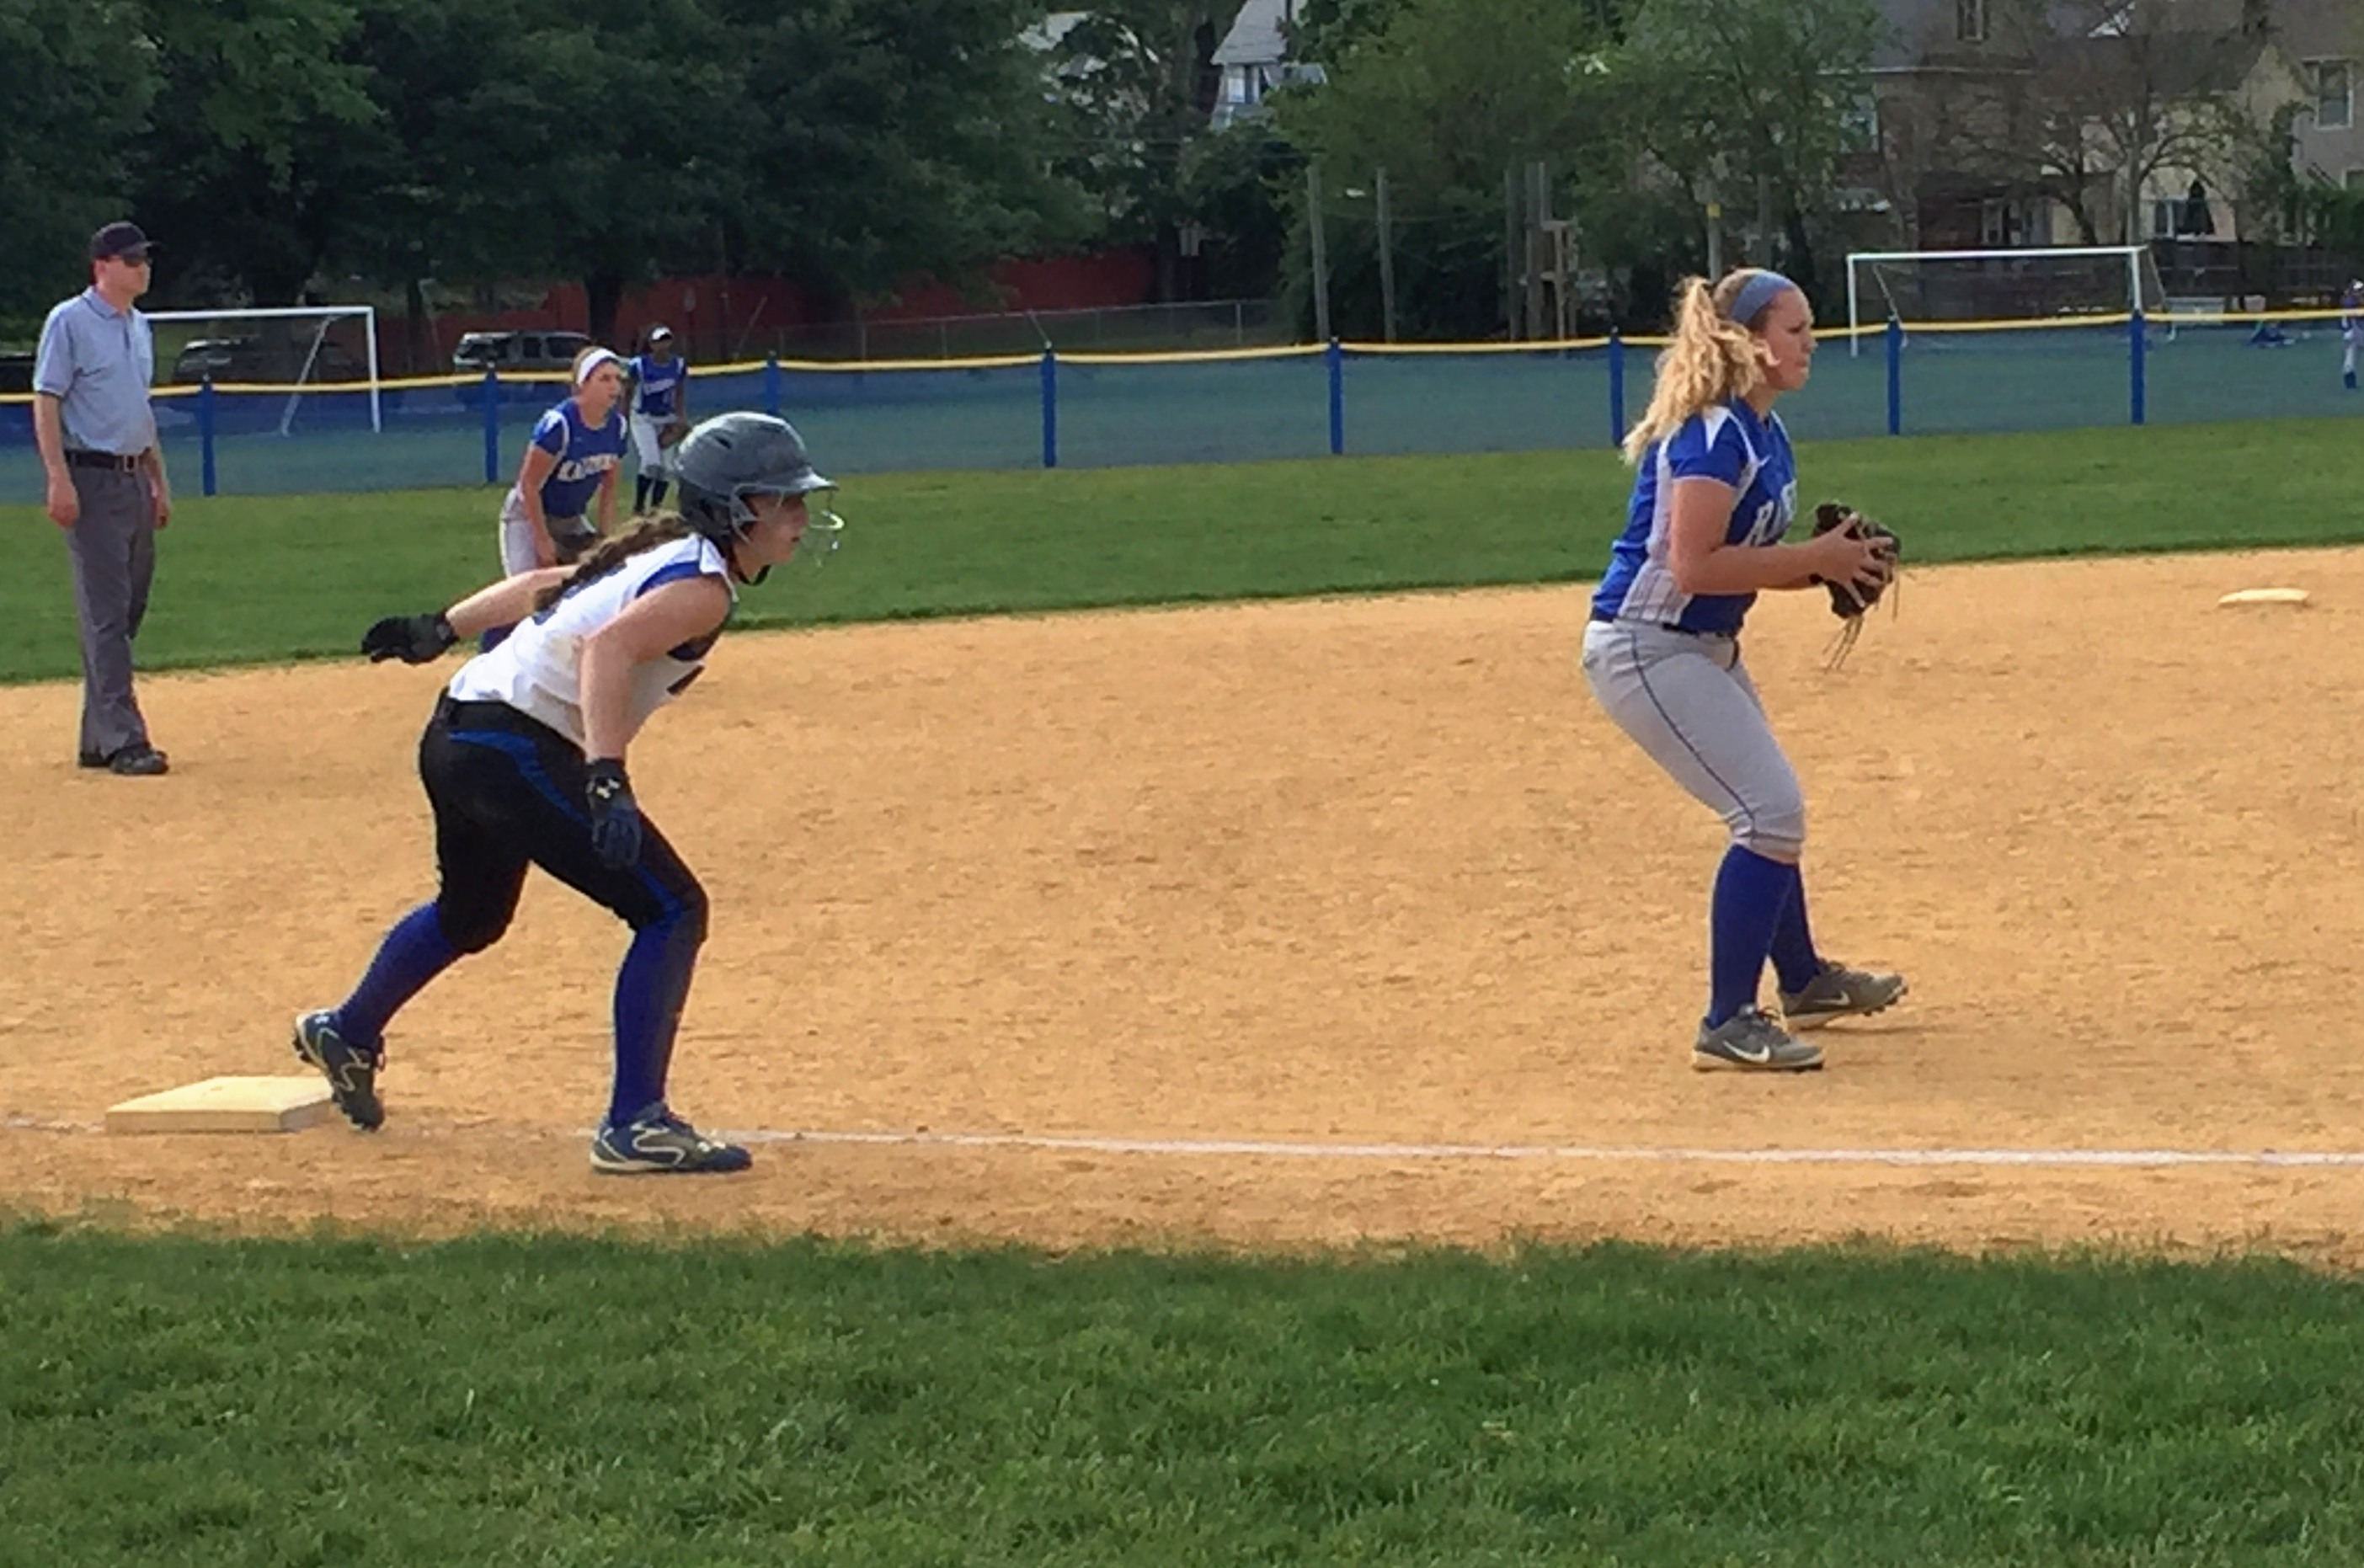 d78f5ac1e65b42945251_02db5a46873ec09c846b_softball_5-19_third_base.JPG